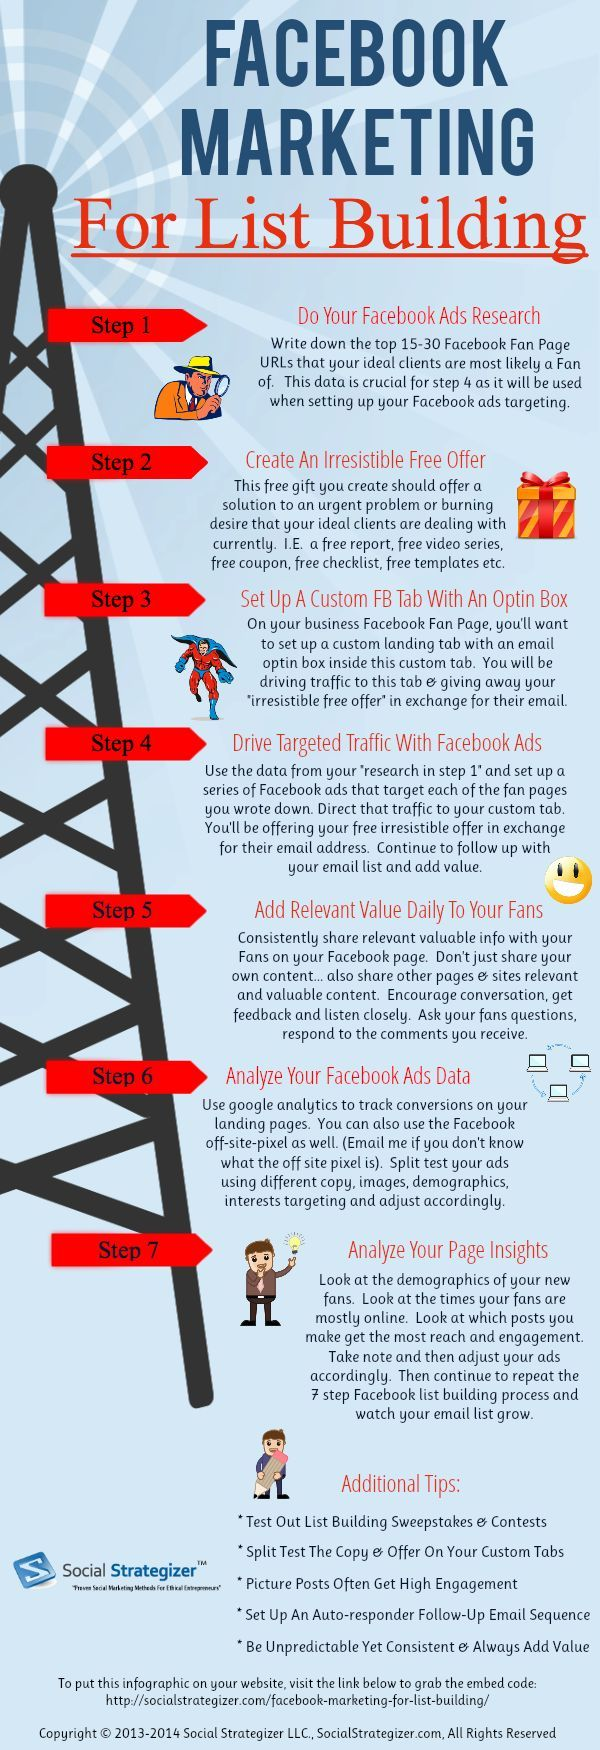 Discover how to use #Facebook to build your #email list